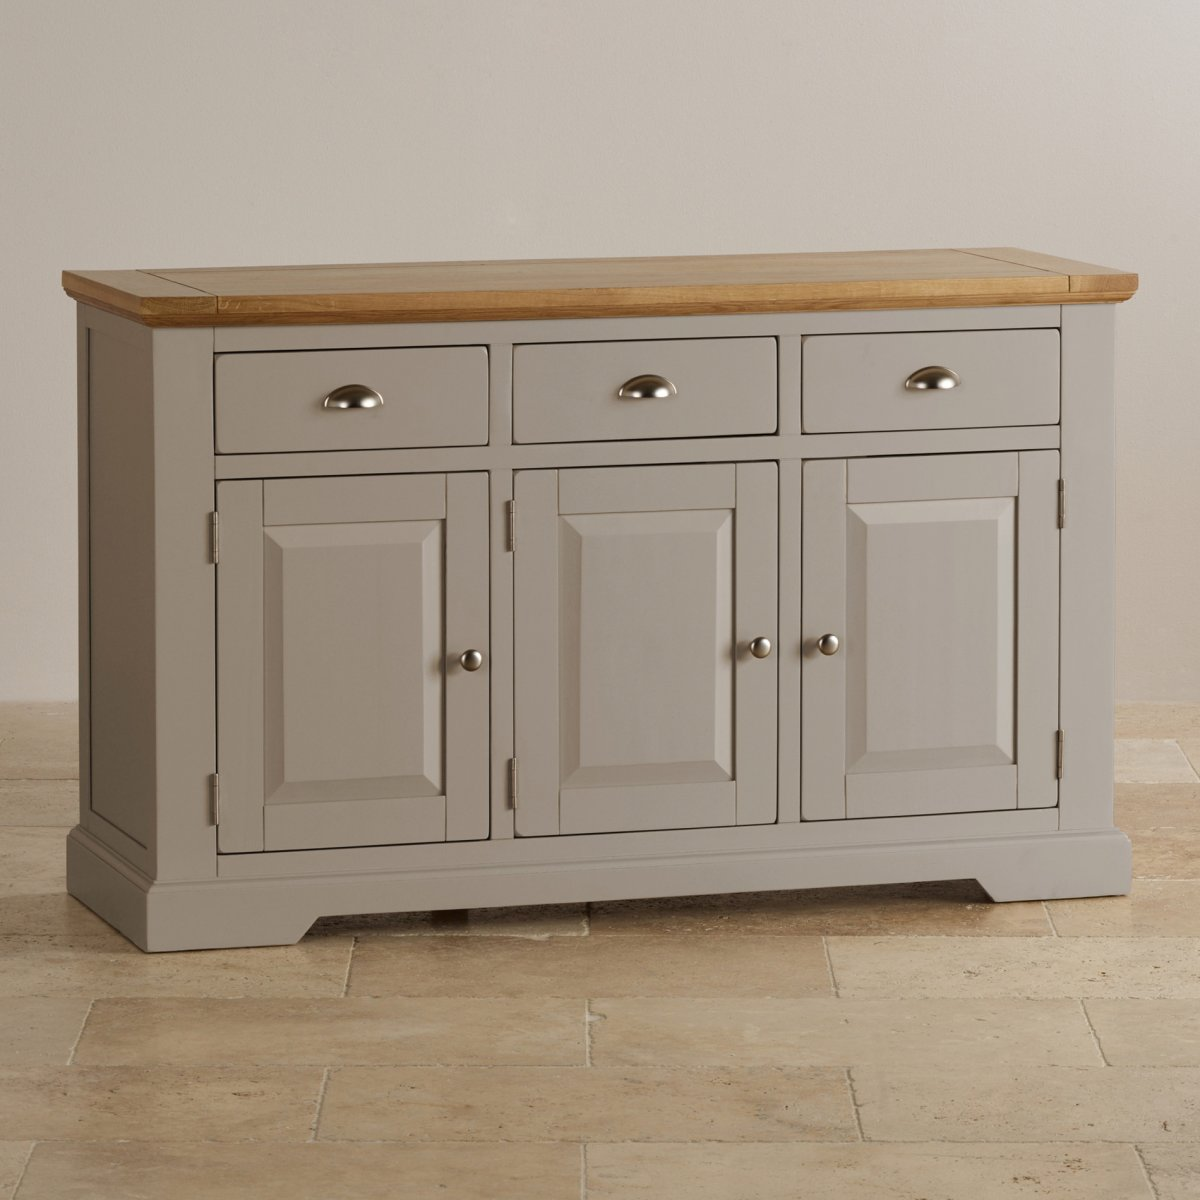 St ives large grey sideboard in solid hardwood brushed for Painted buffet sideboard